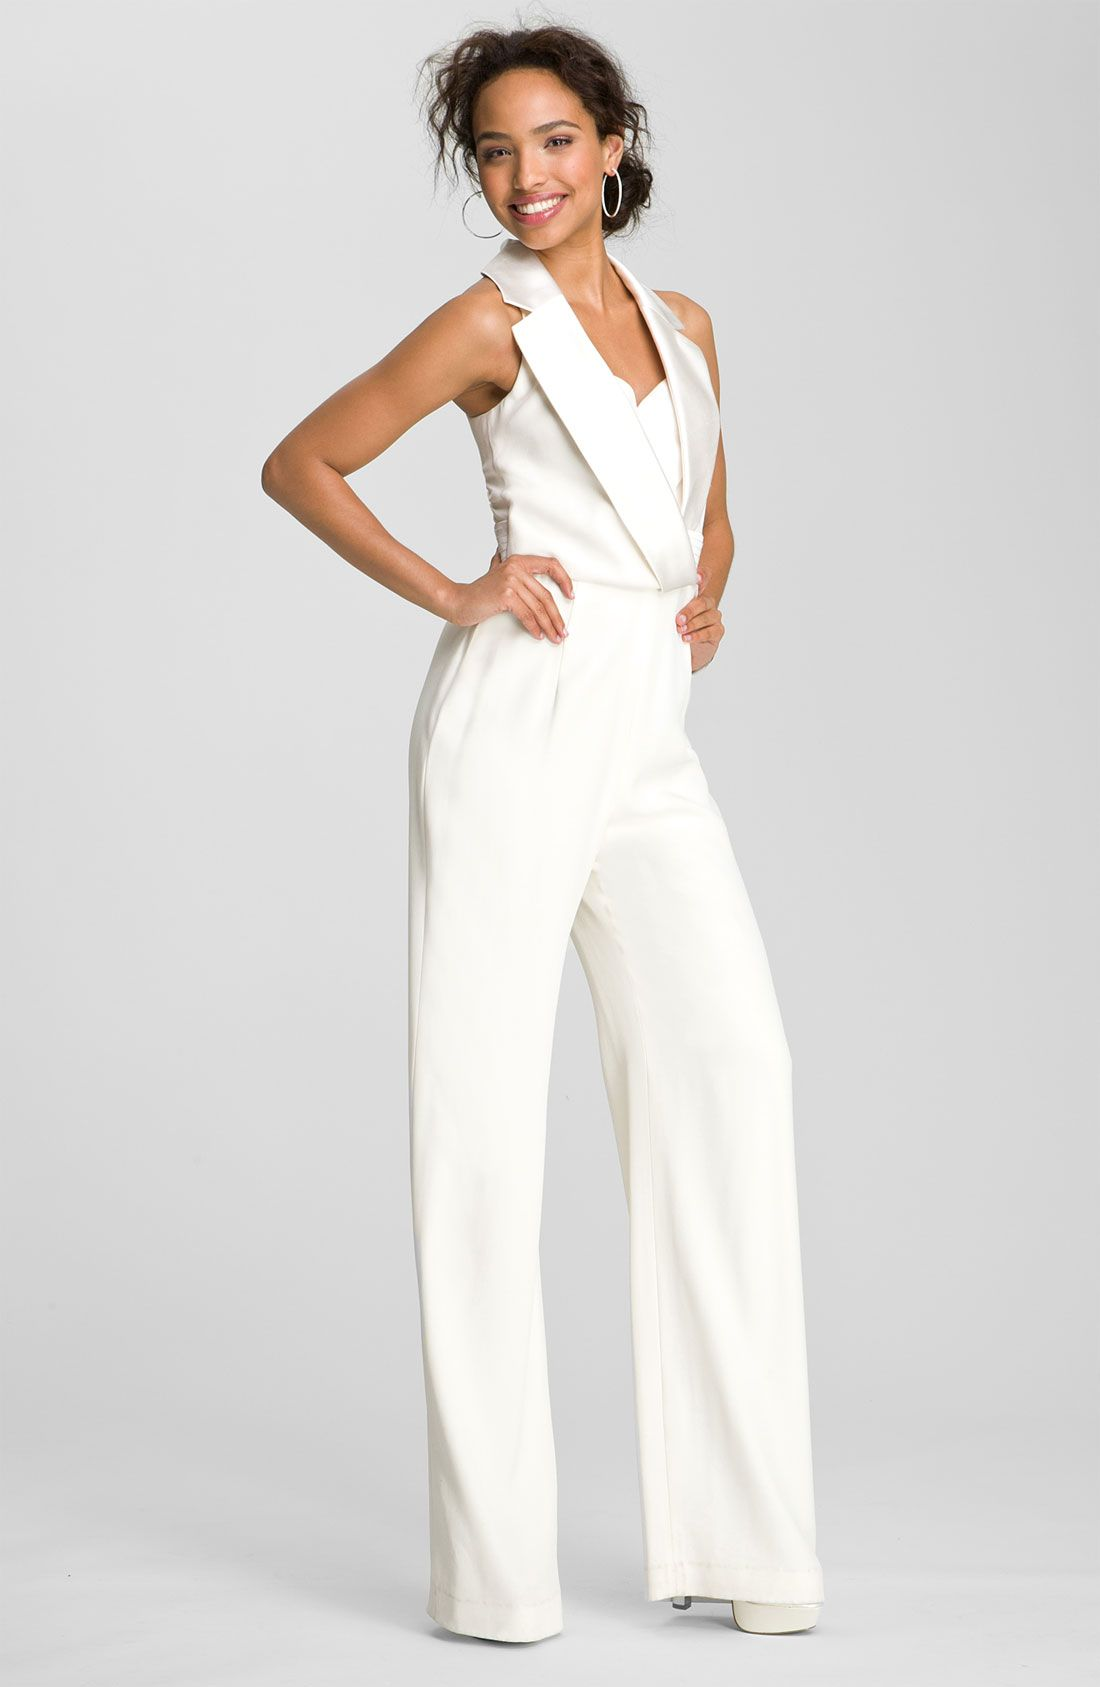 Lastest Home Jumpsuits Formal Jumpsuits 11 Formal Jumpsuits 11 Jumpsuits Views